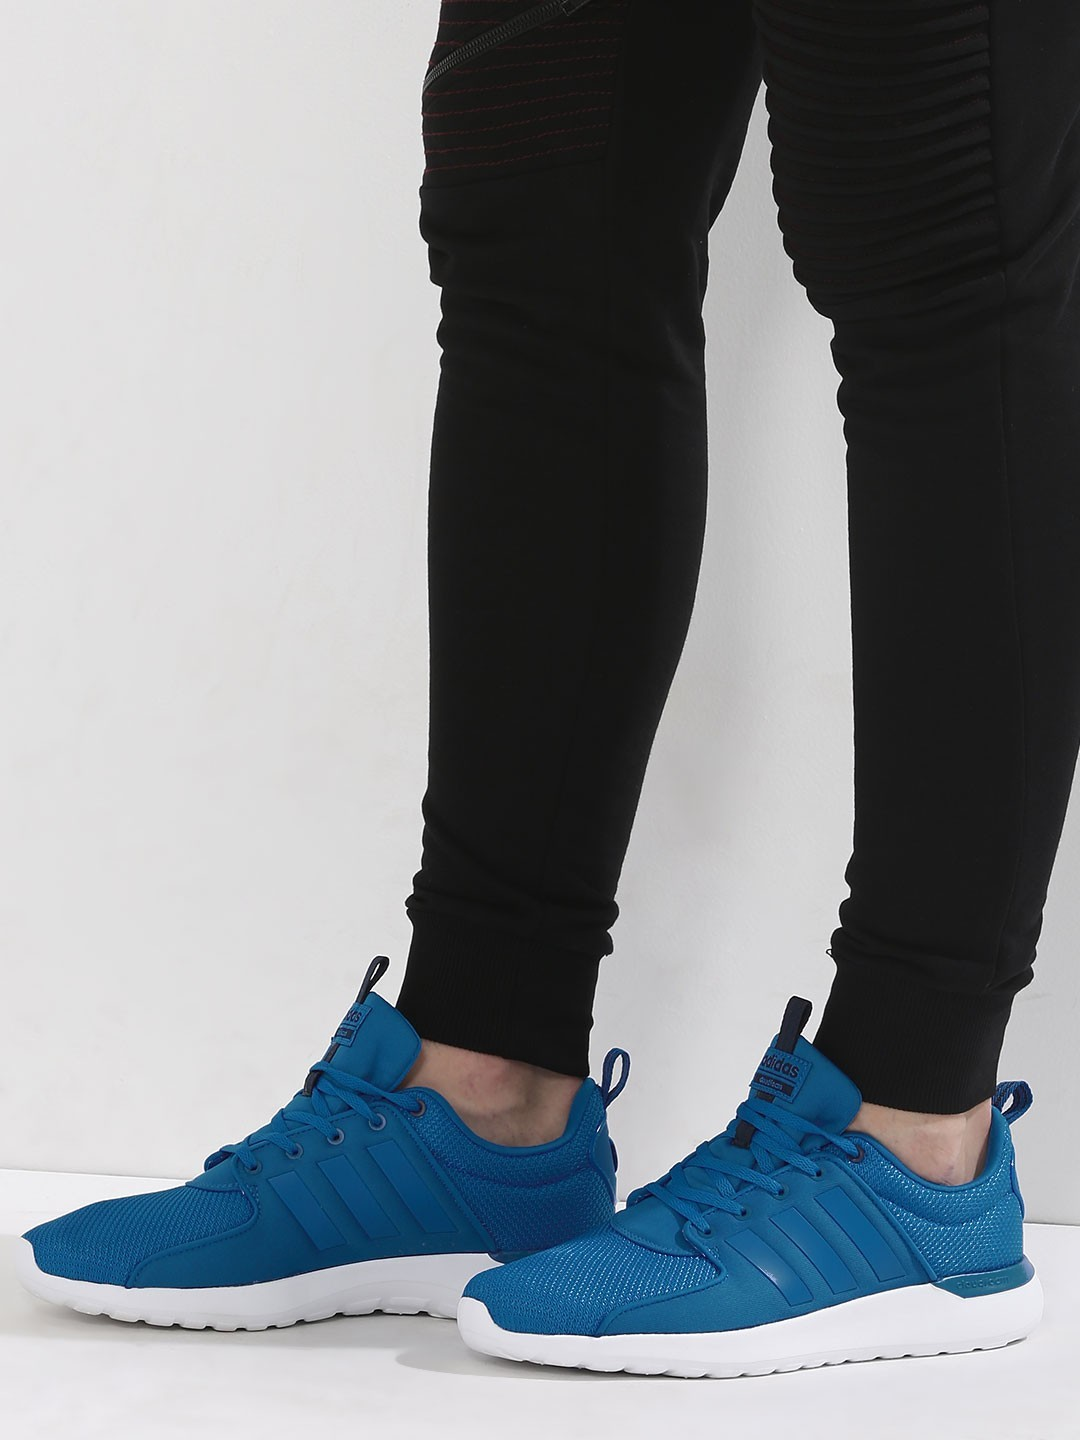 Buy Adidas Neo Blue White Lite Racer Trainer with Cloudfoam